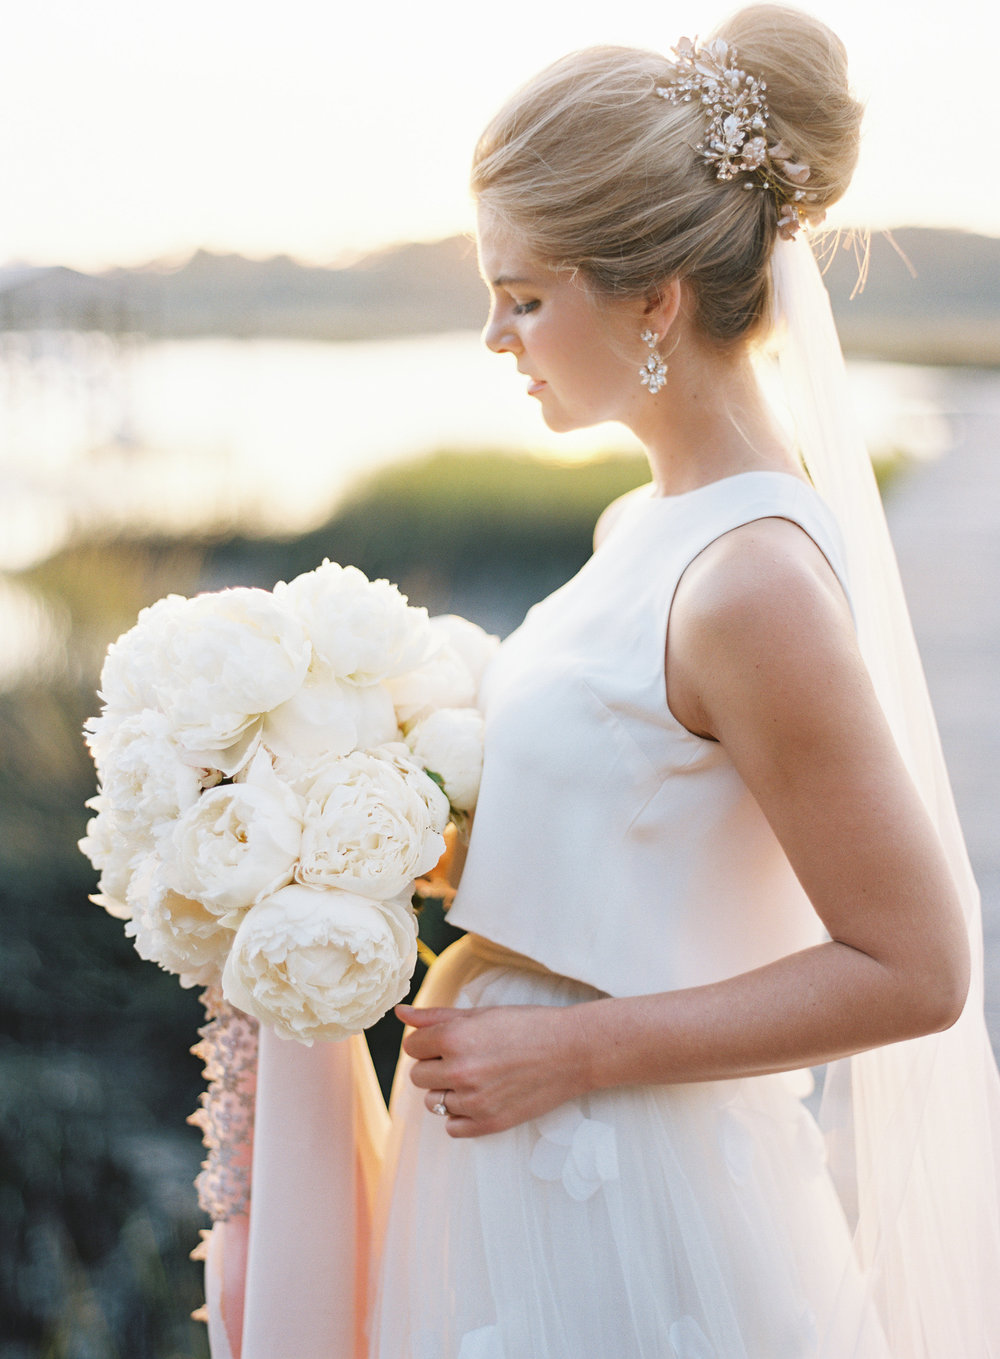 Old Meets New Southern Bridal Inspiration